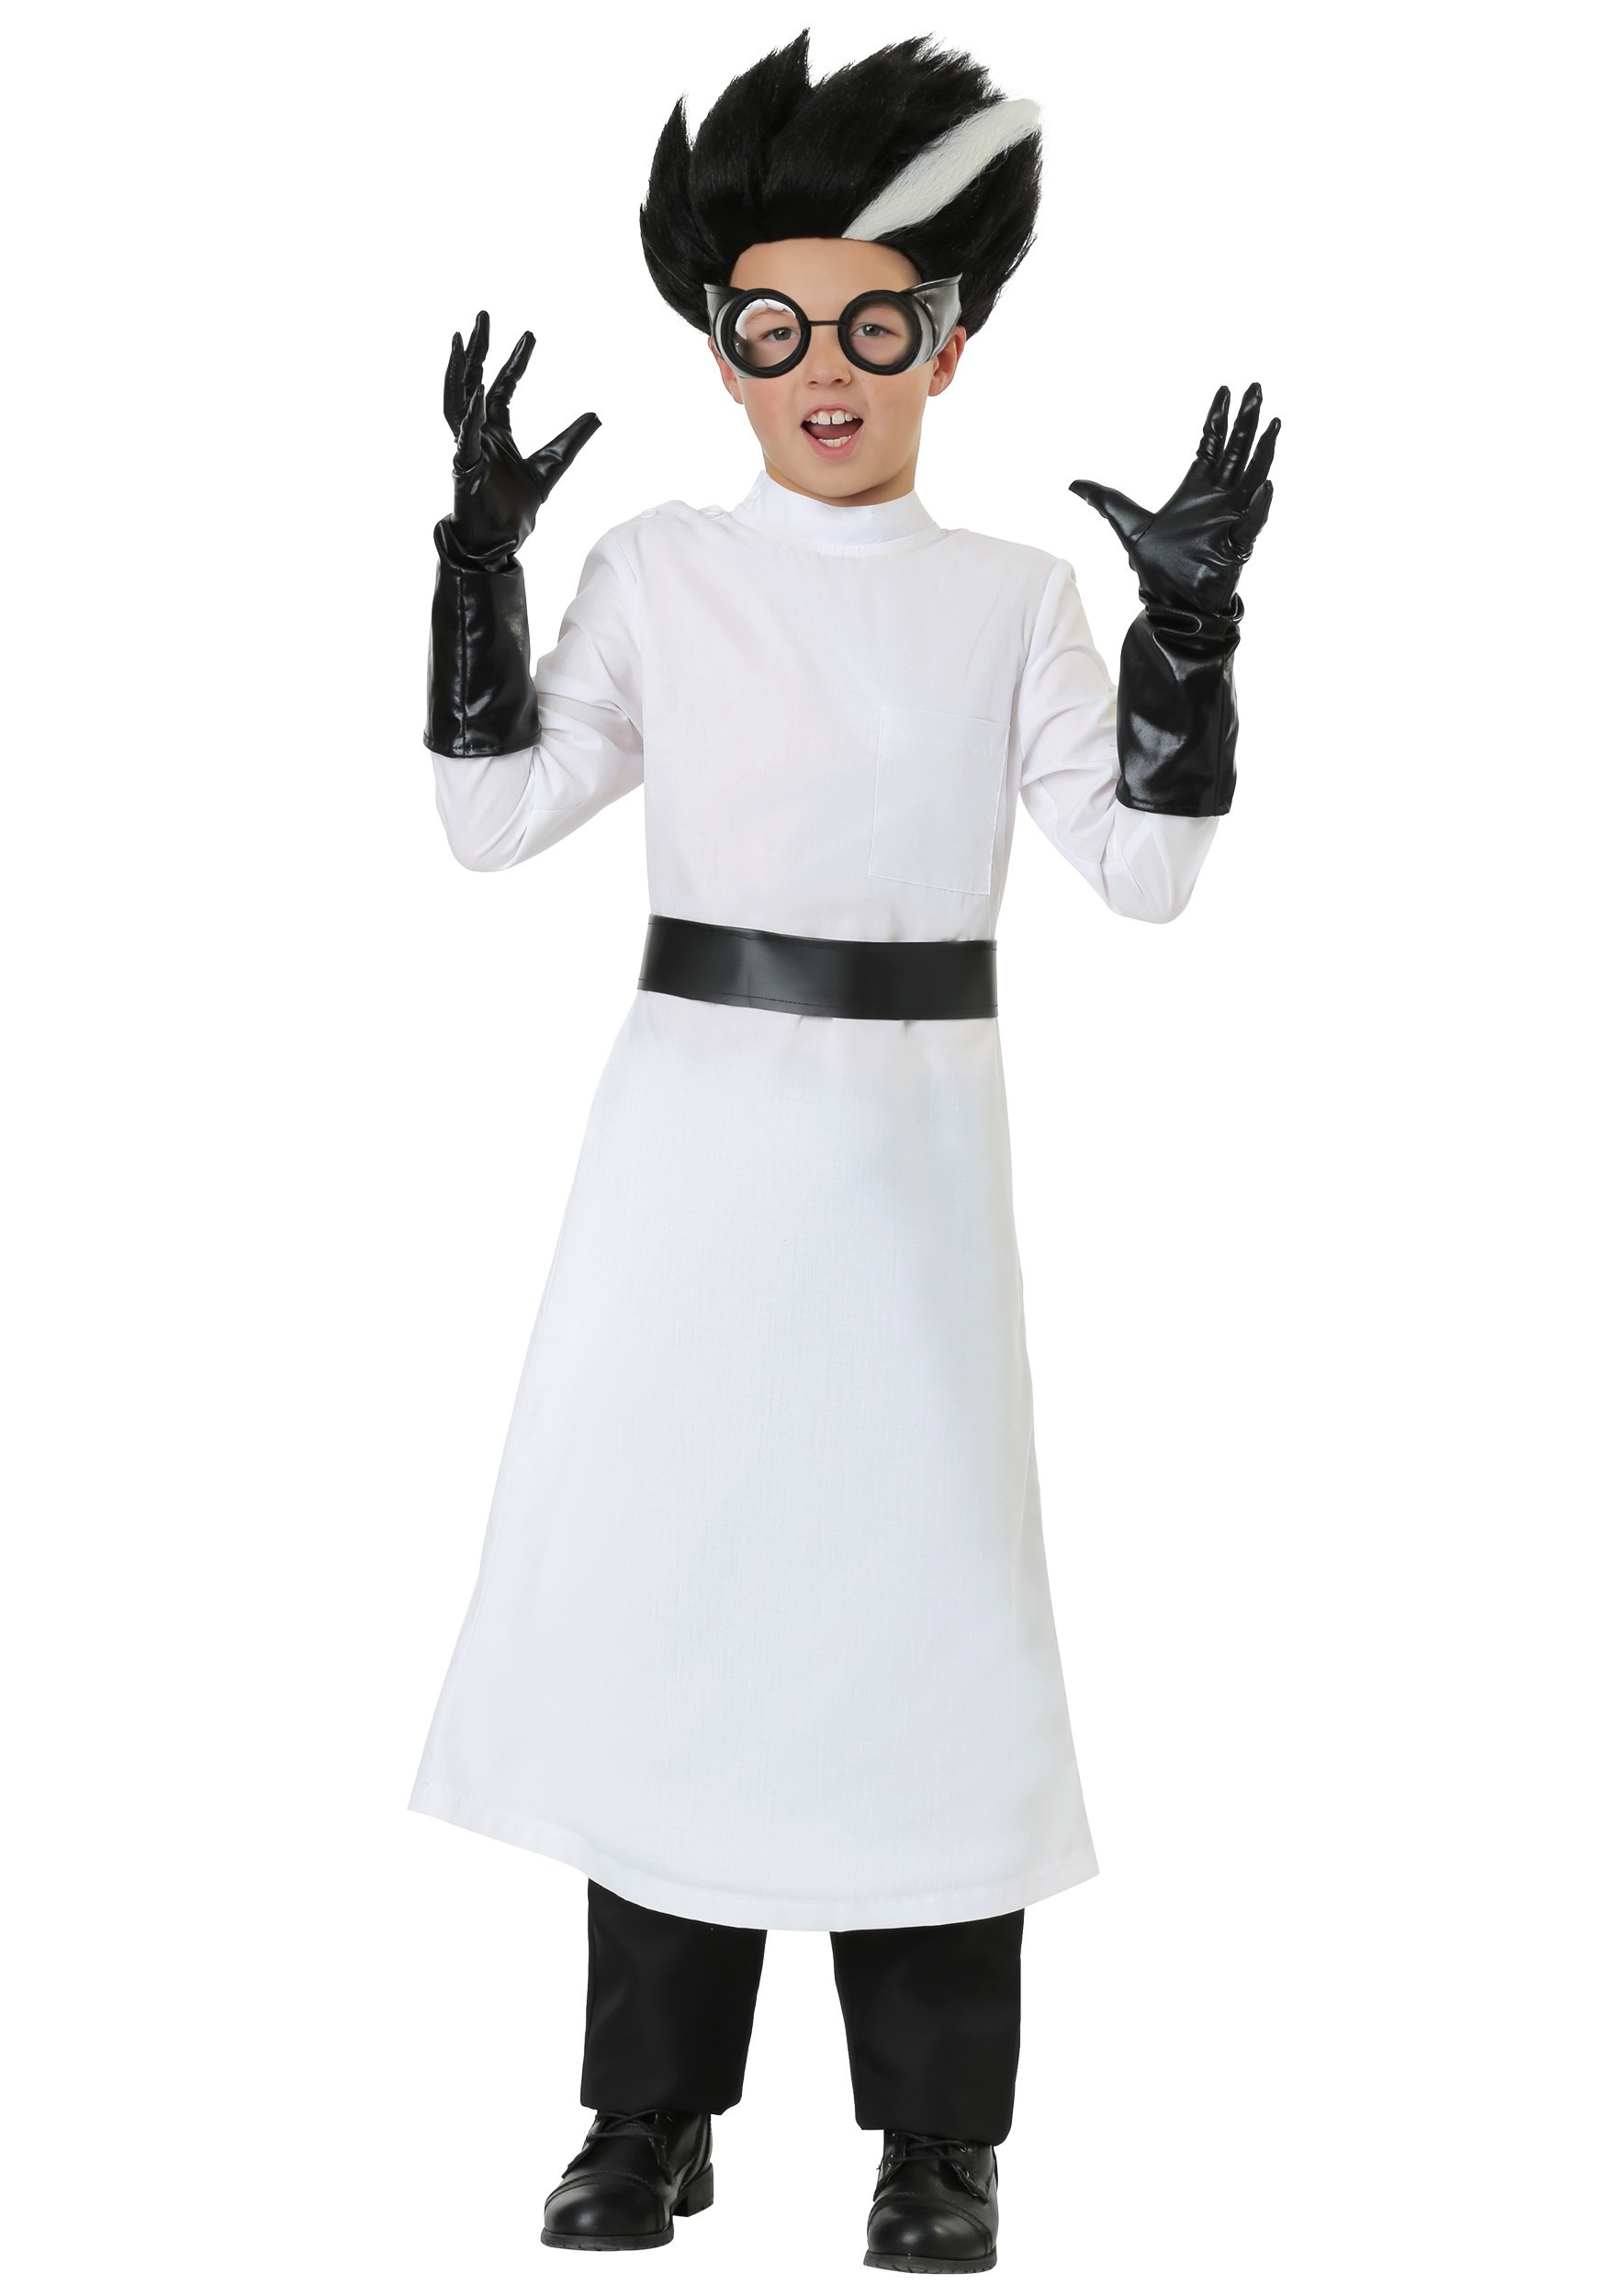 Mad Scientist Costume for a Child